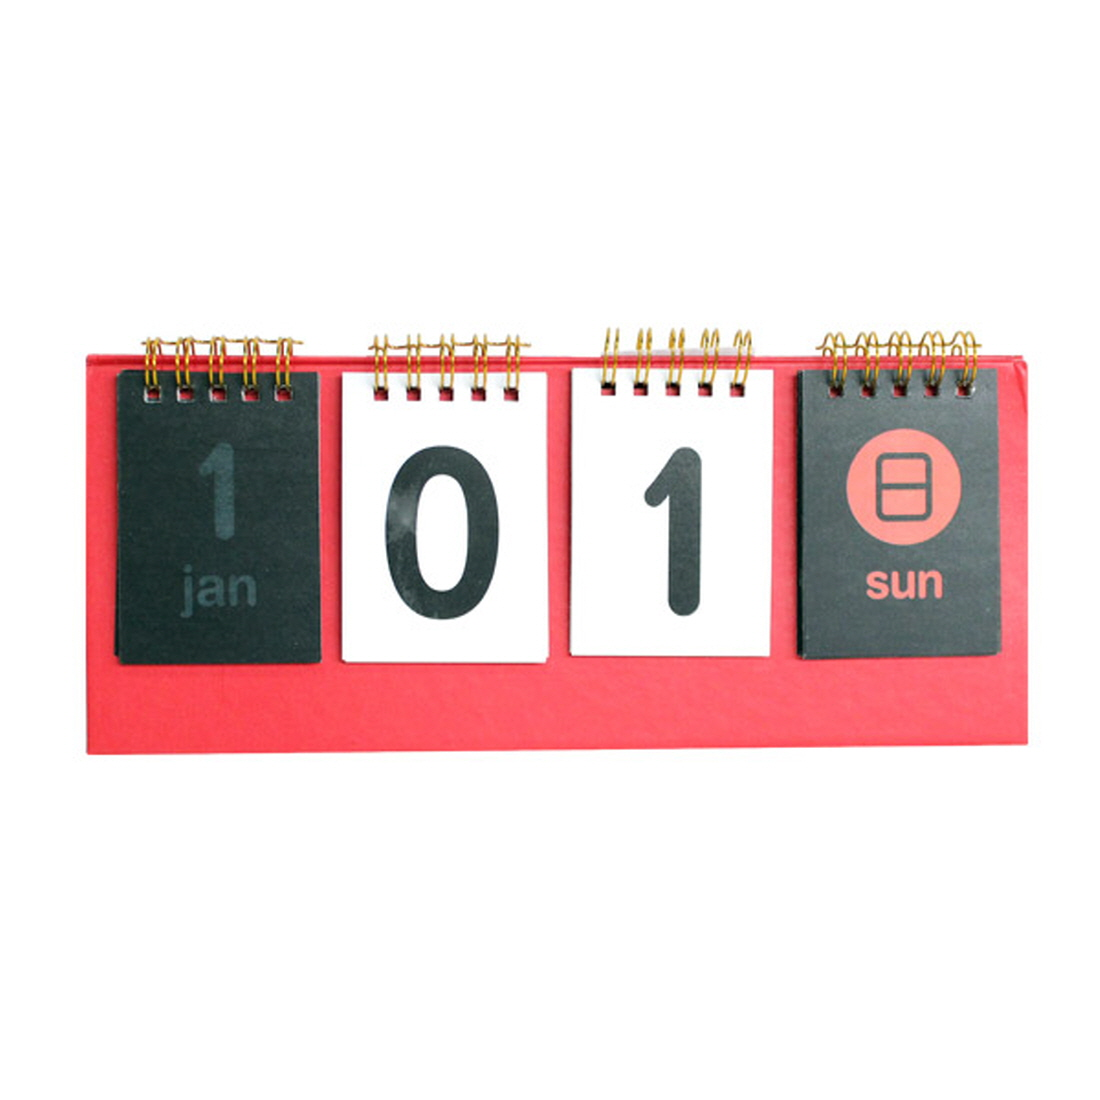 vicdream d day standing desk calendar any year count down calendar red